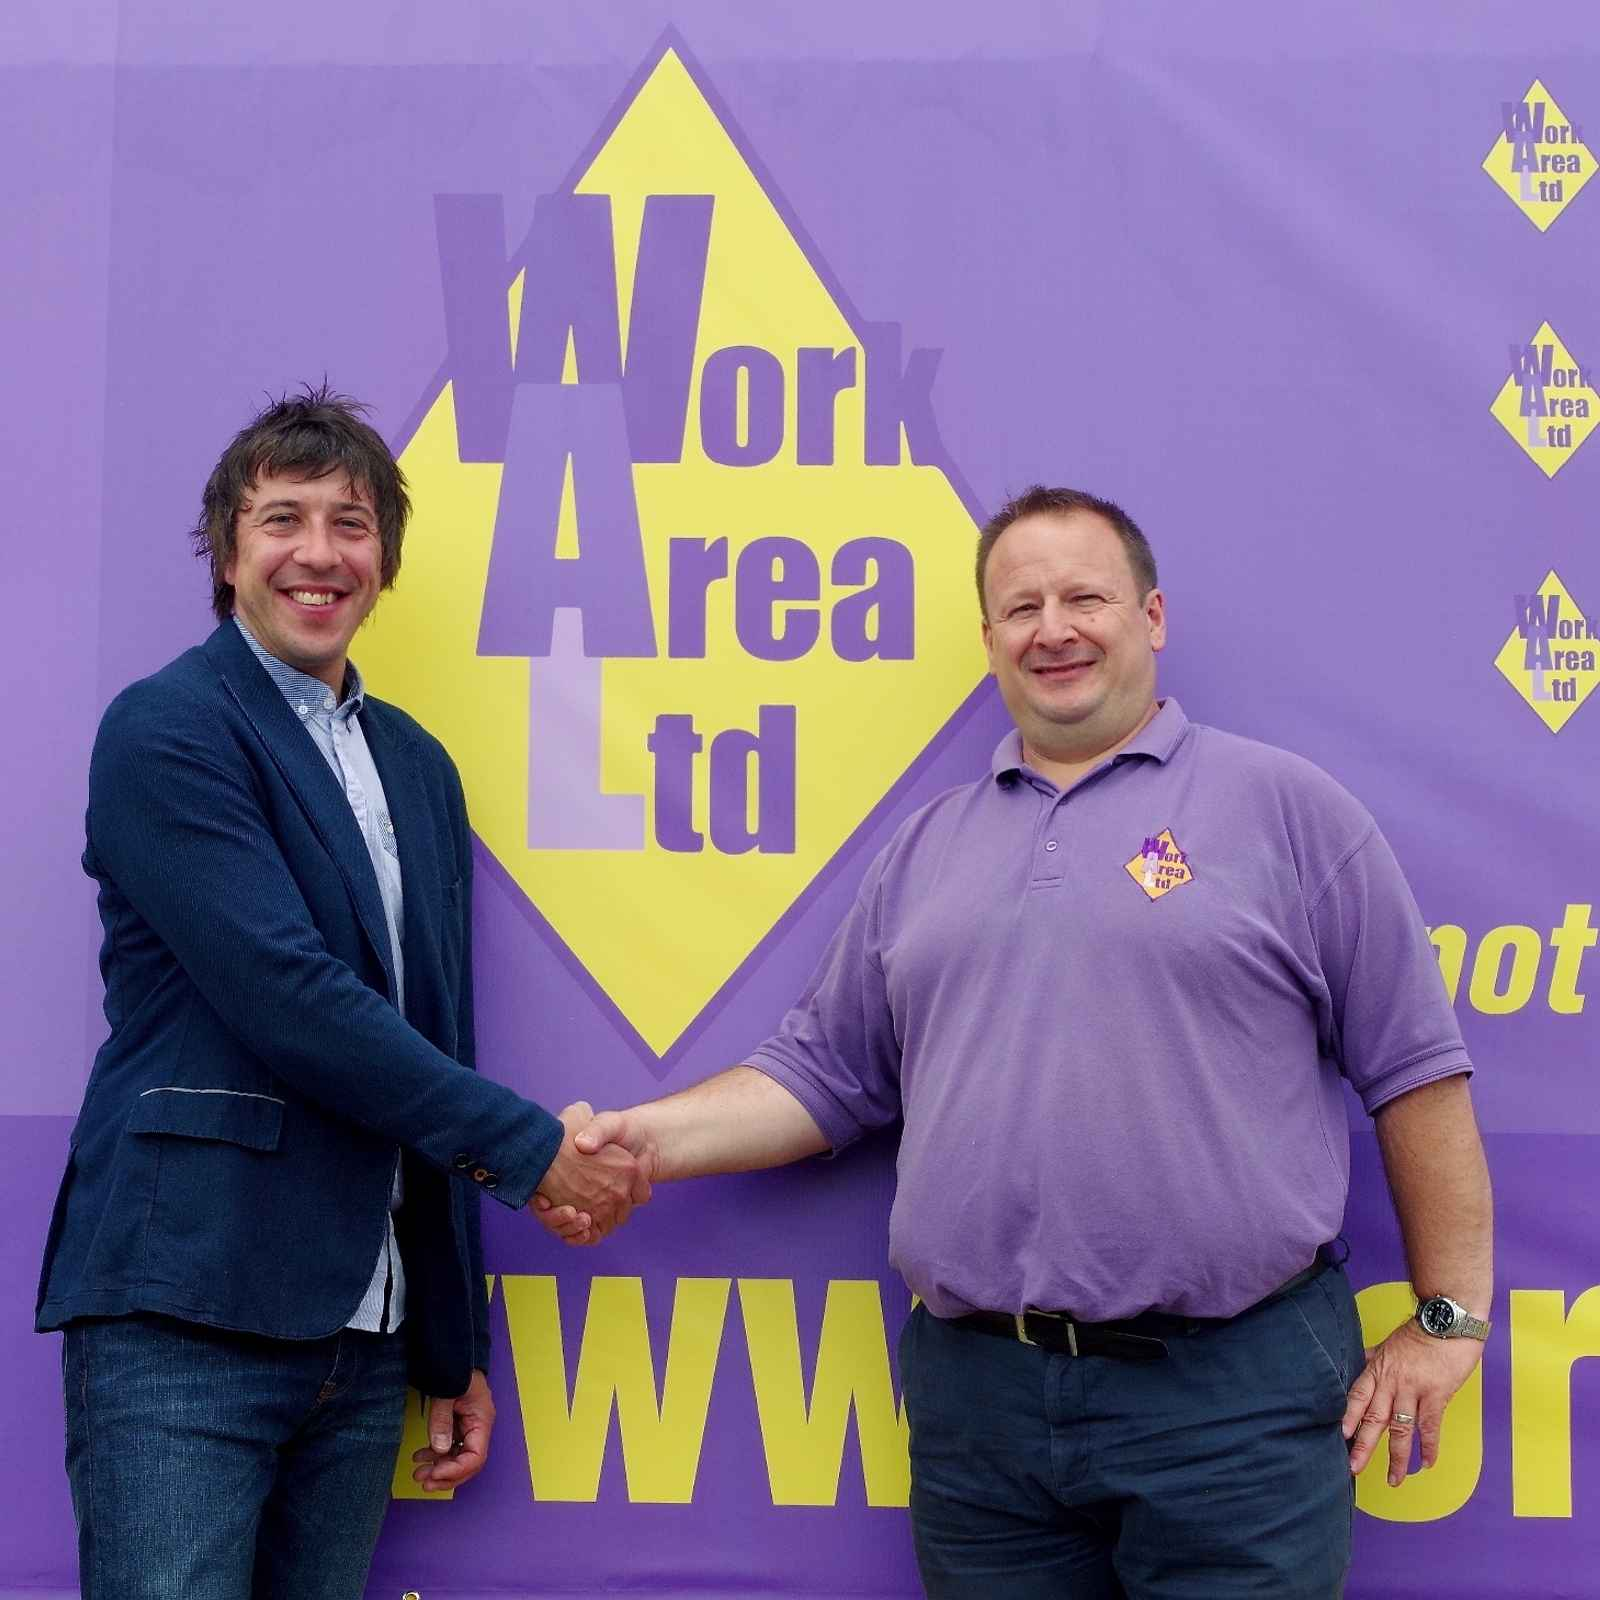 Work Area Limited provide Town End Terrace Sponsorship for Community Club